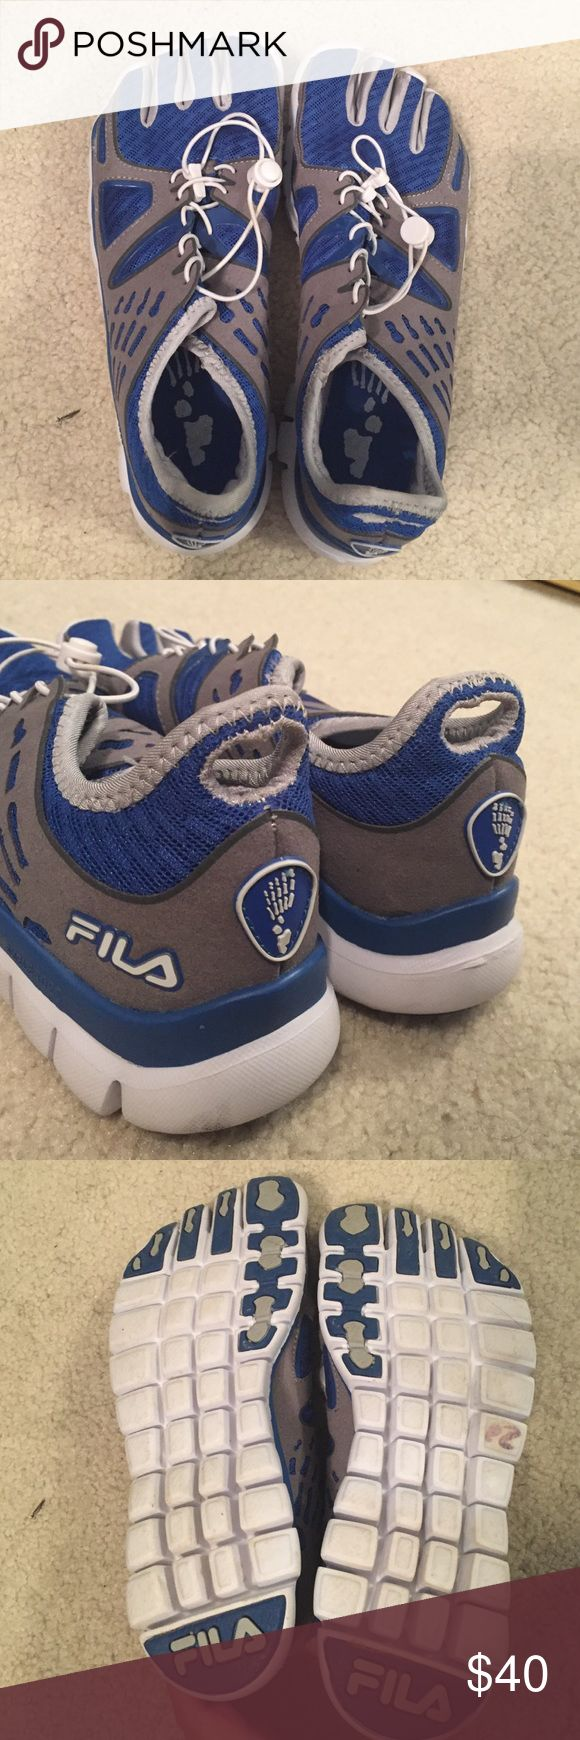 Fila running shoes Toe shoes, great for running or activities. Worn once, like new condition Fila Shoes Athletic Shoes